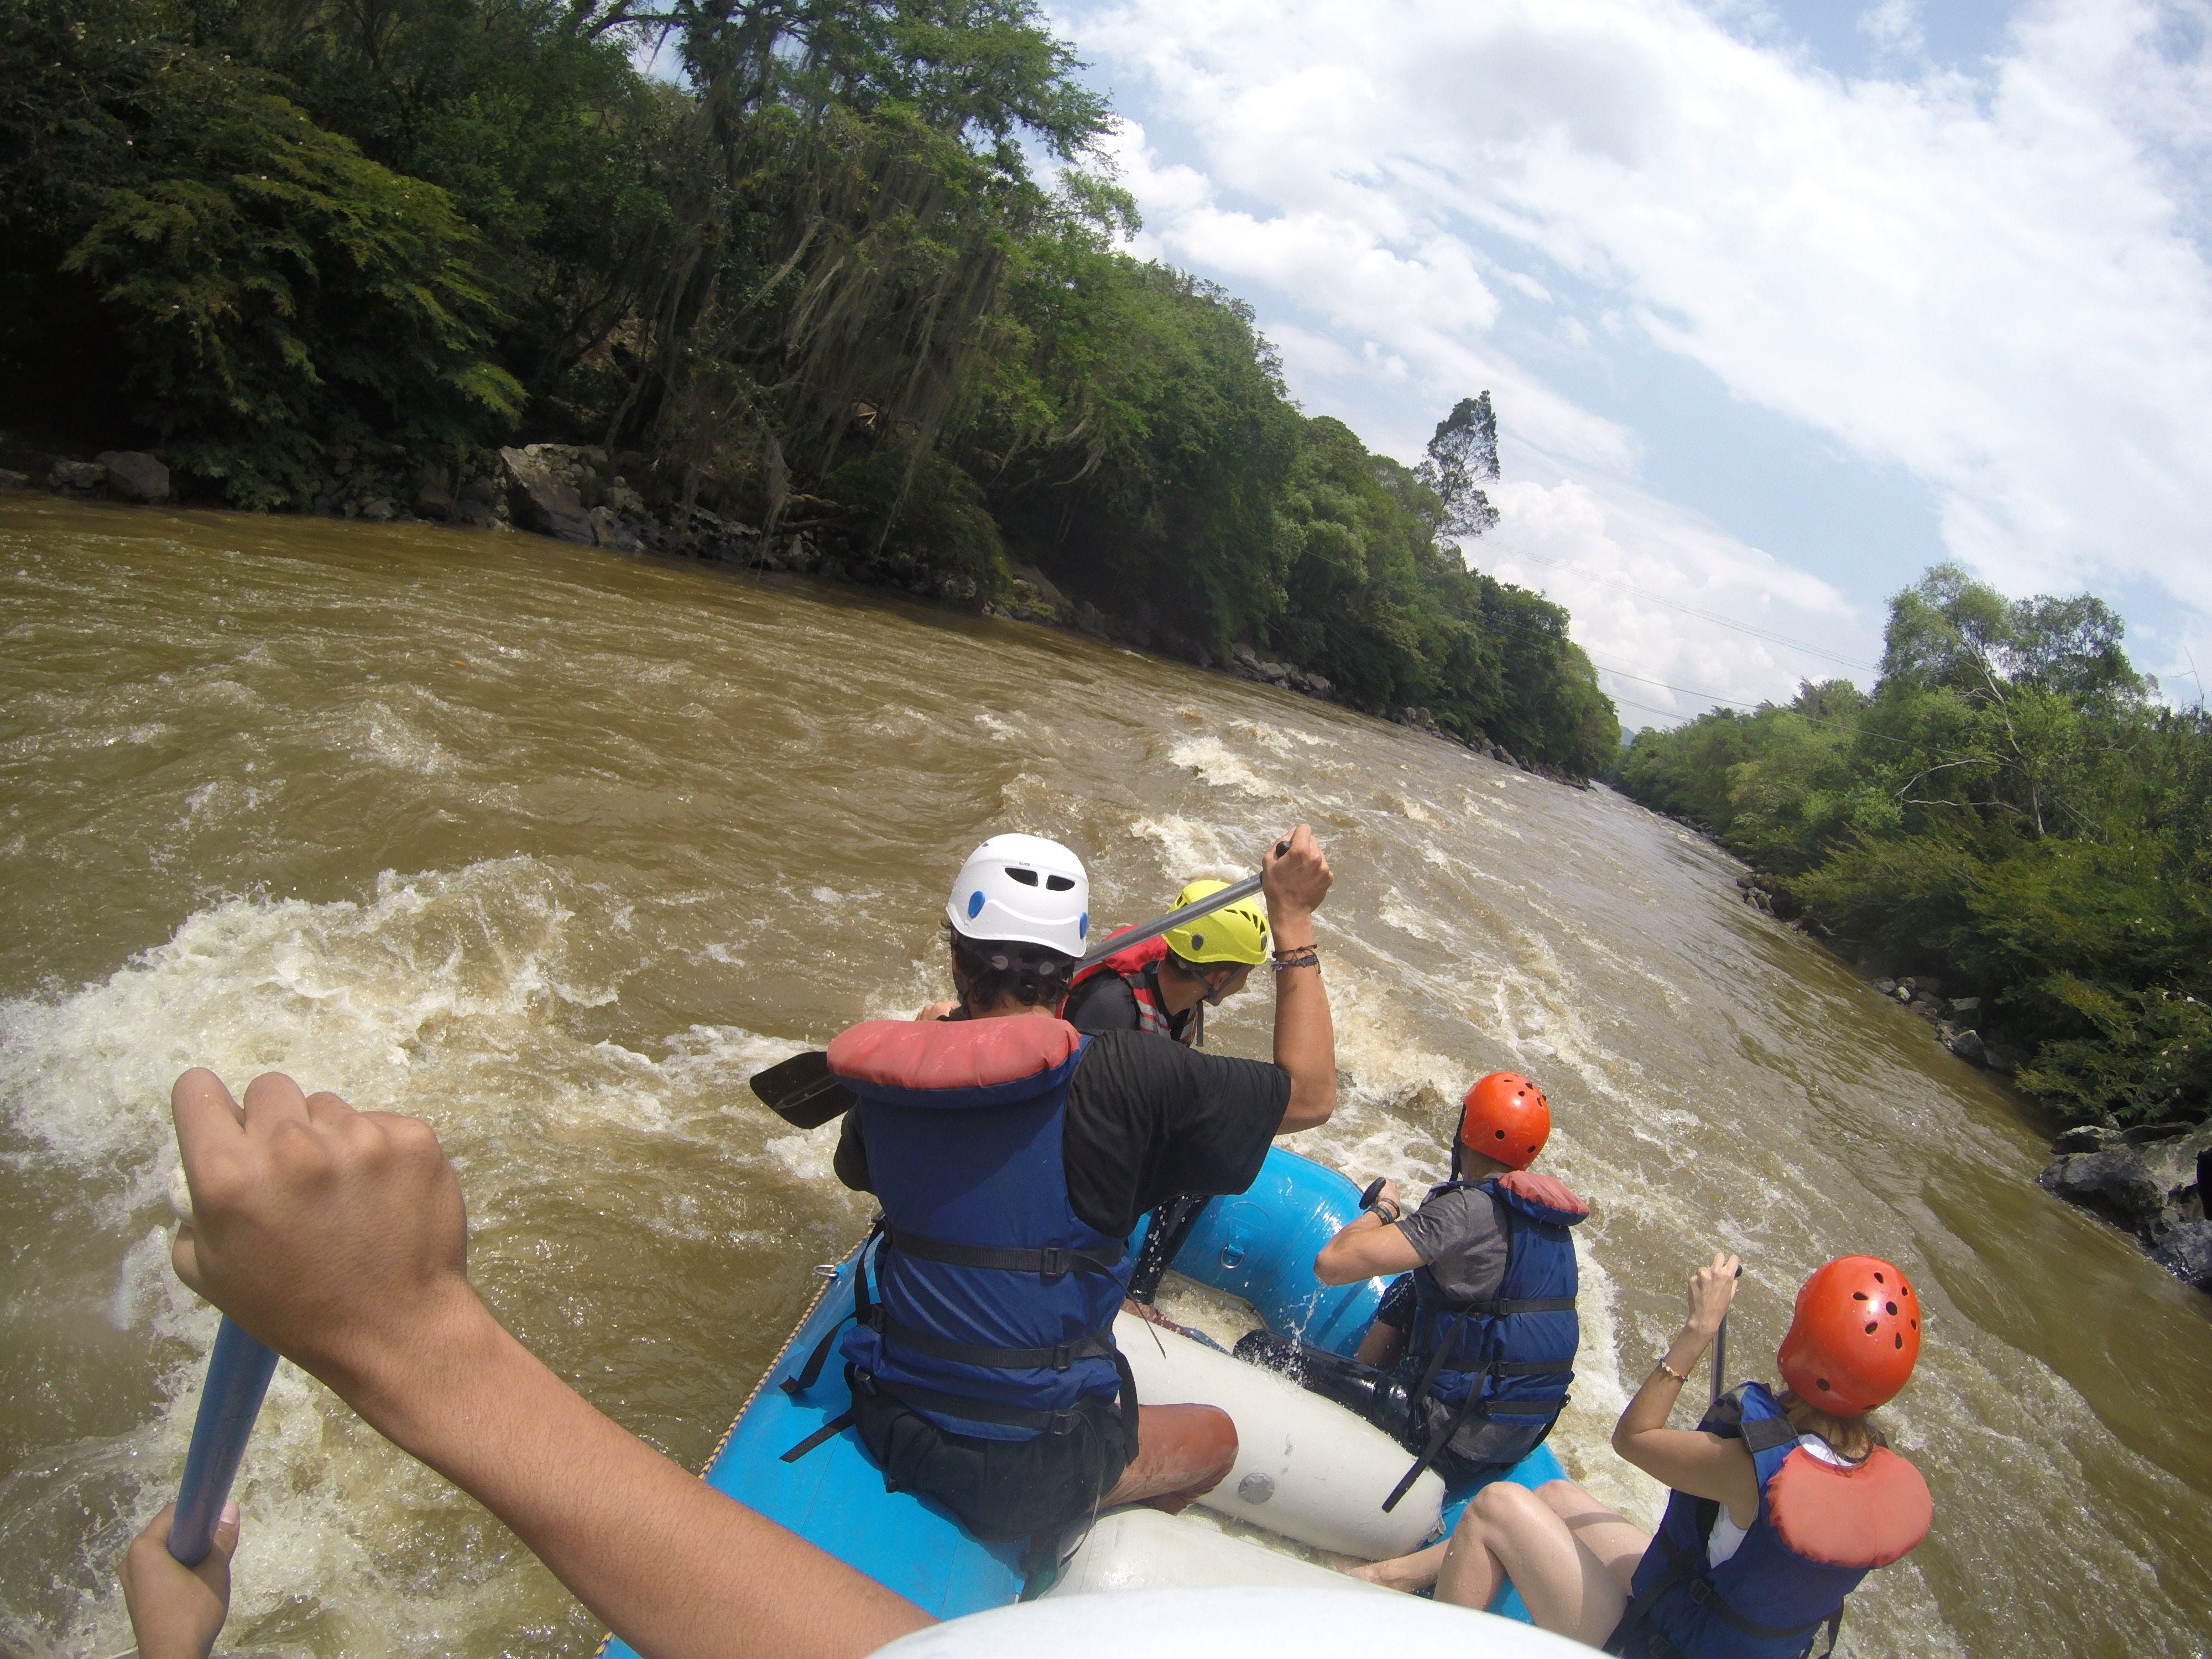 Boating in Ecolombia experience